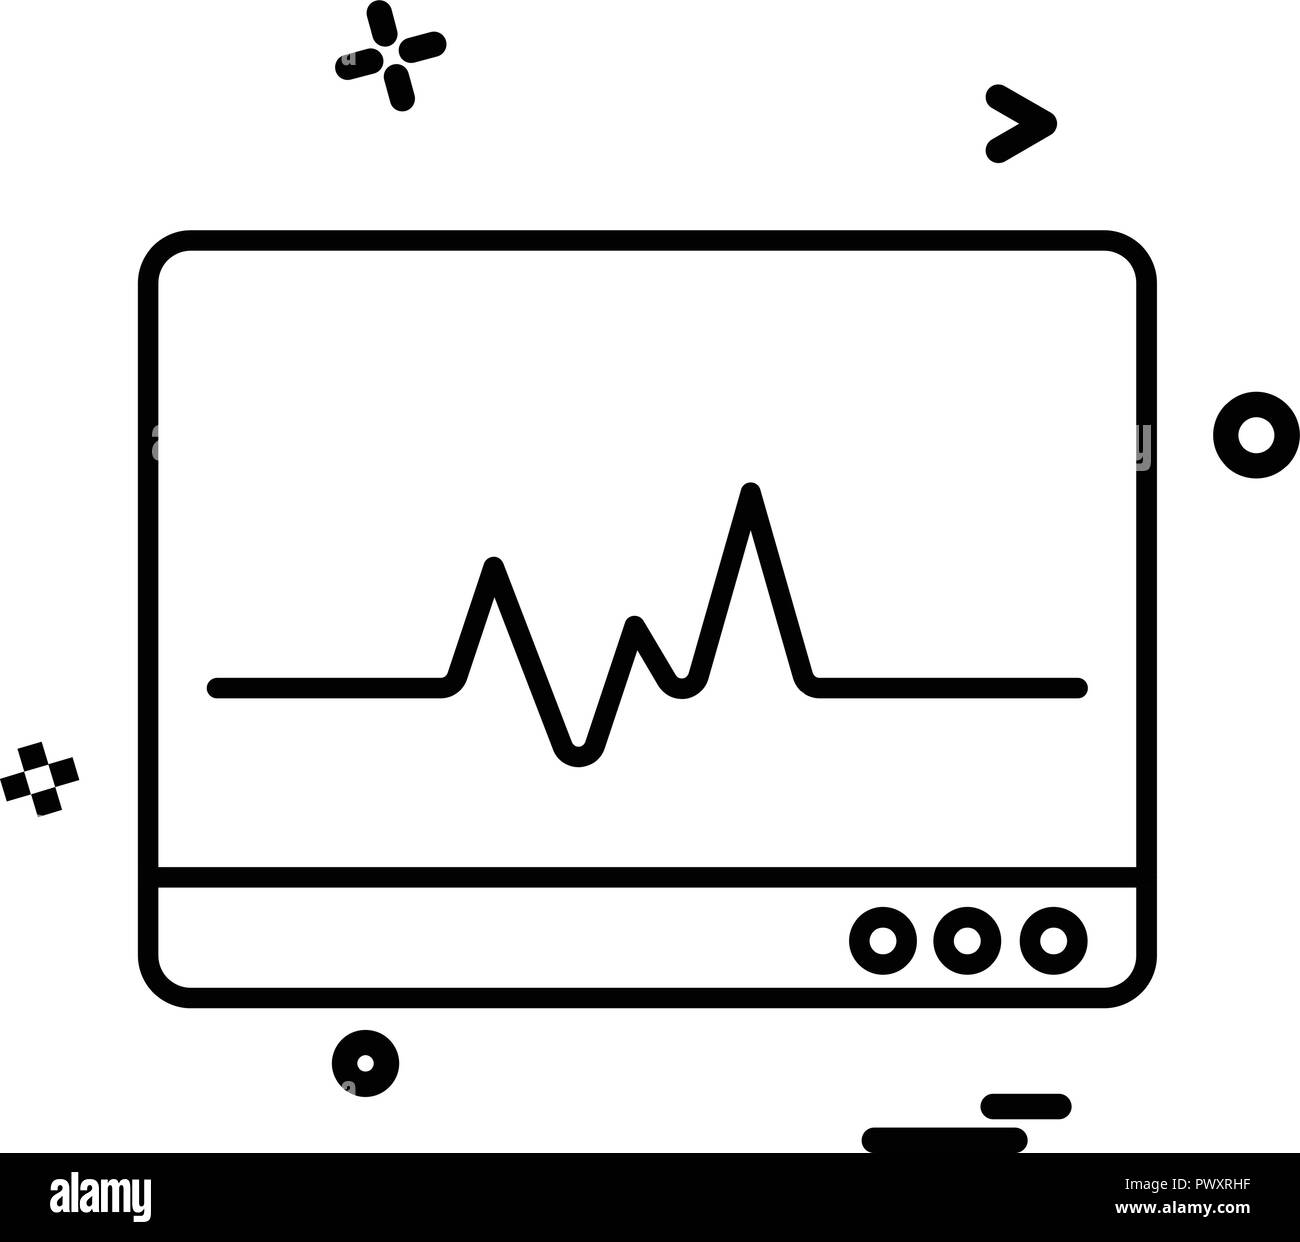 Heart Rate Line Black And White Stock Photos Images Alamy Monitor Schematic Lcd Monitoring Icon Vector Desige Image